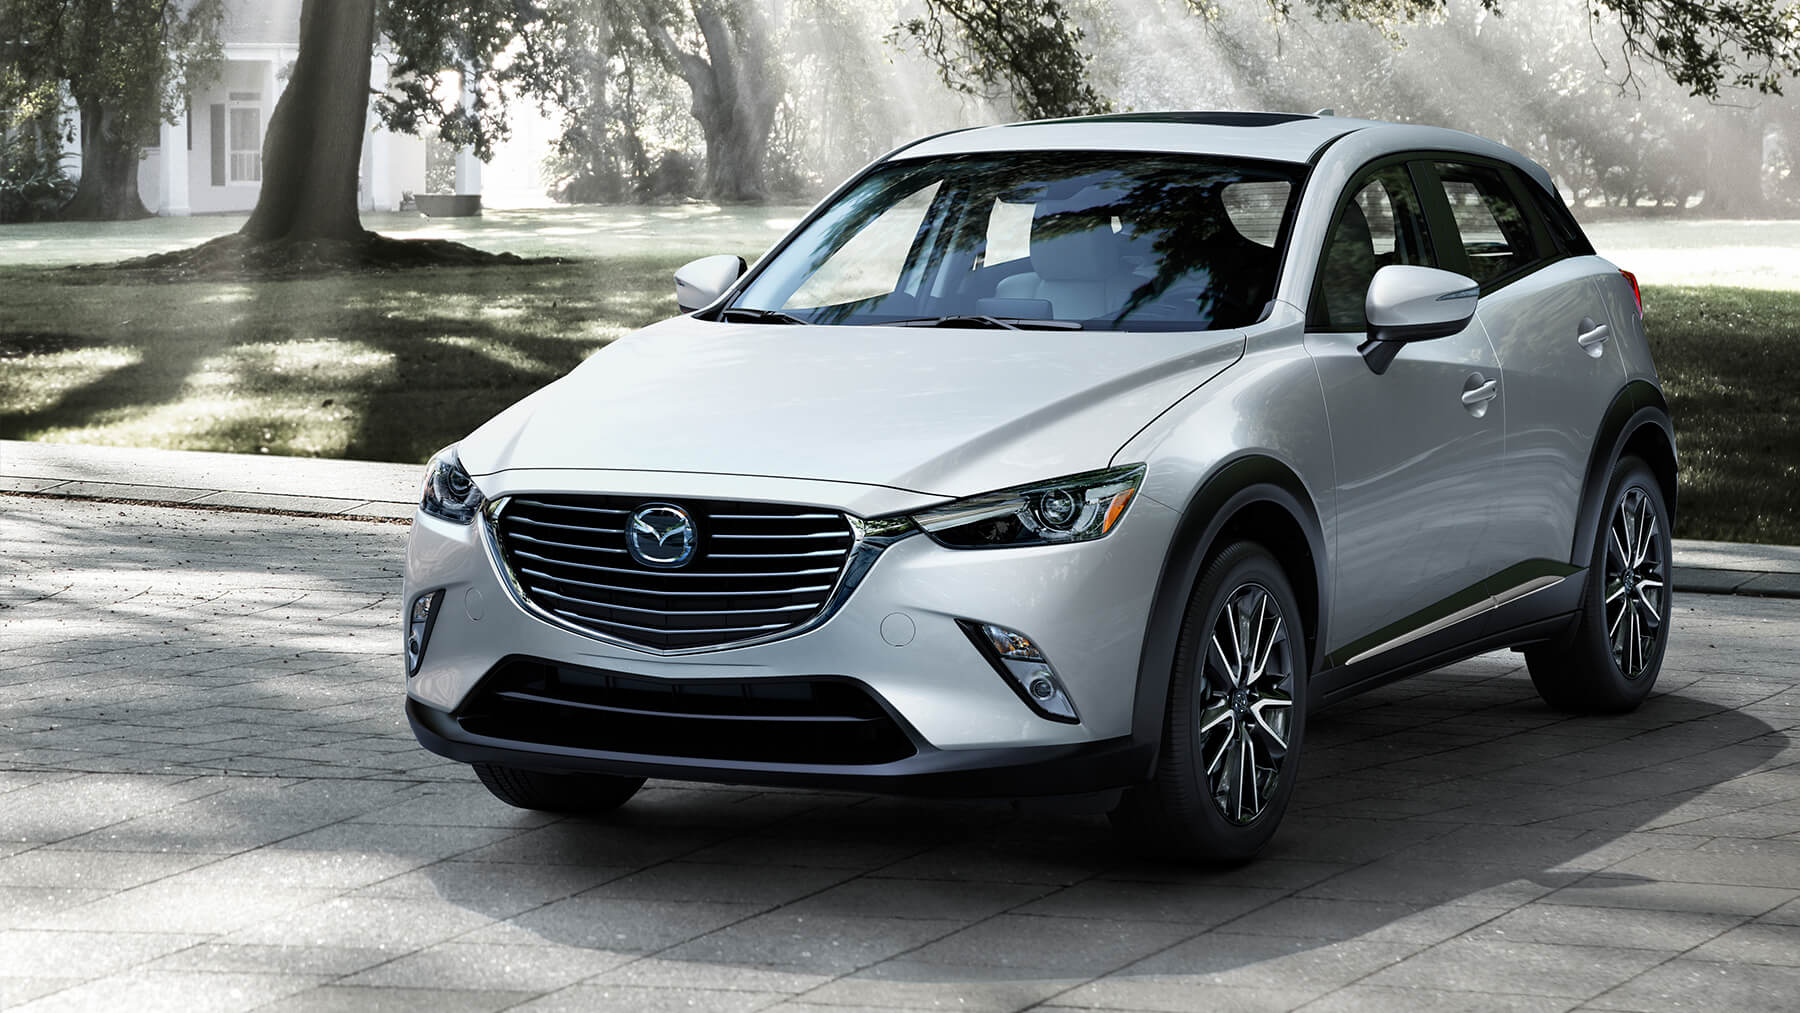 2018 Mazda CX-3: News, Changes, Performance >> New 2017 Mazda Cx 3 For Sale Near Bedford Tx Irving Tx